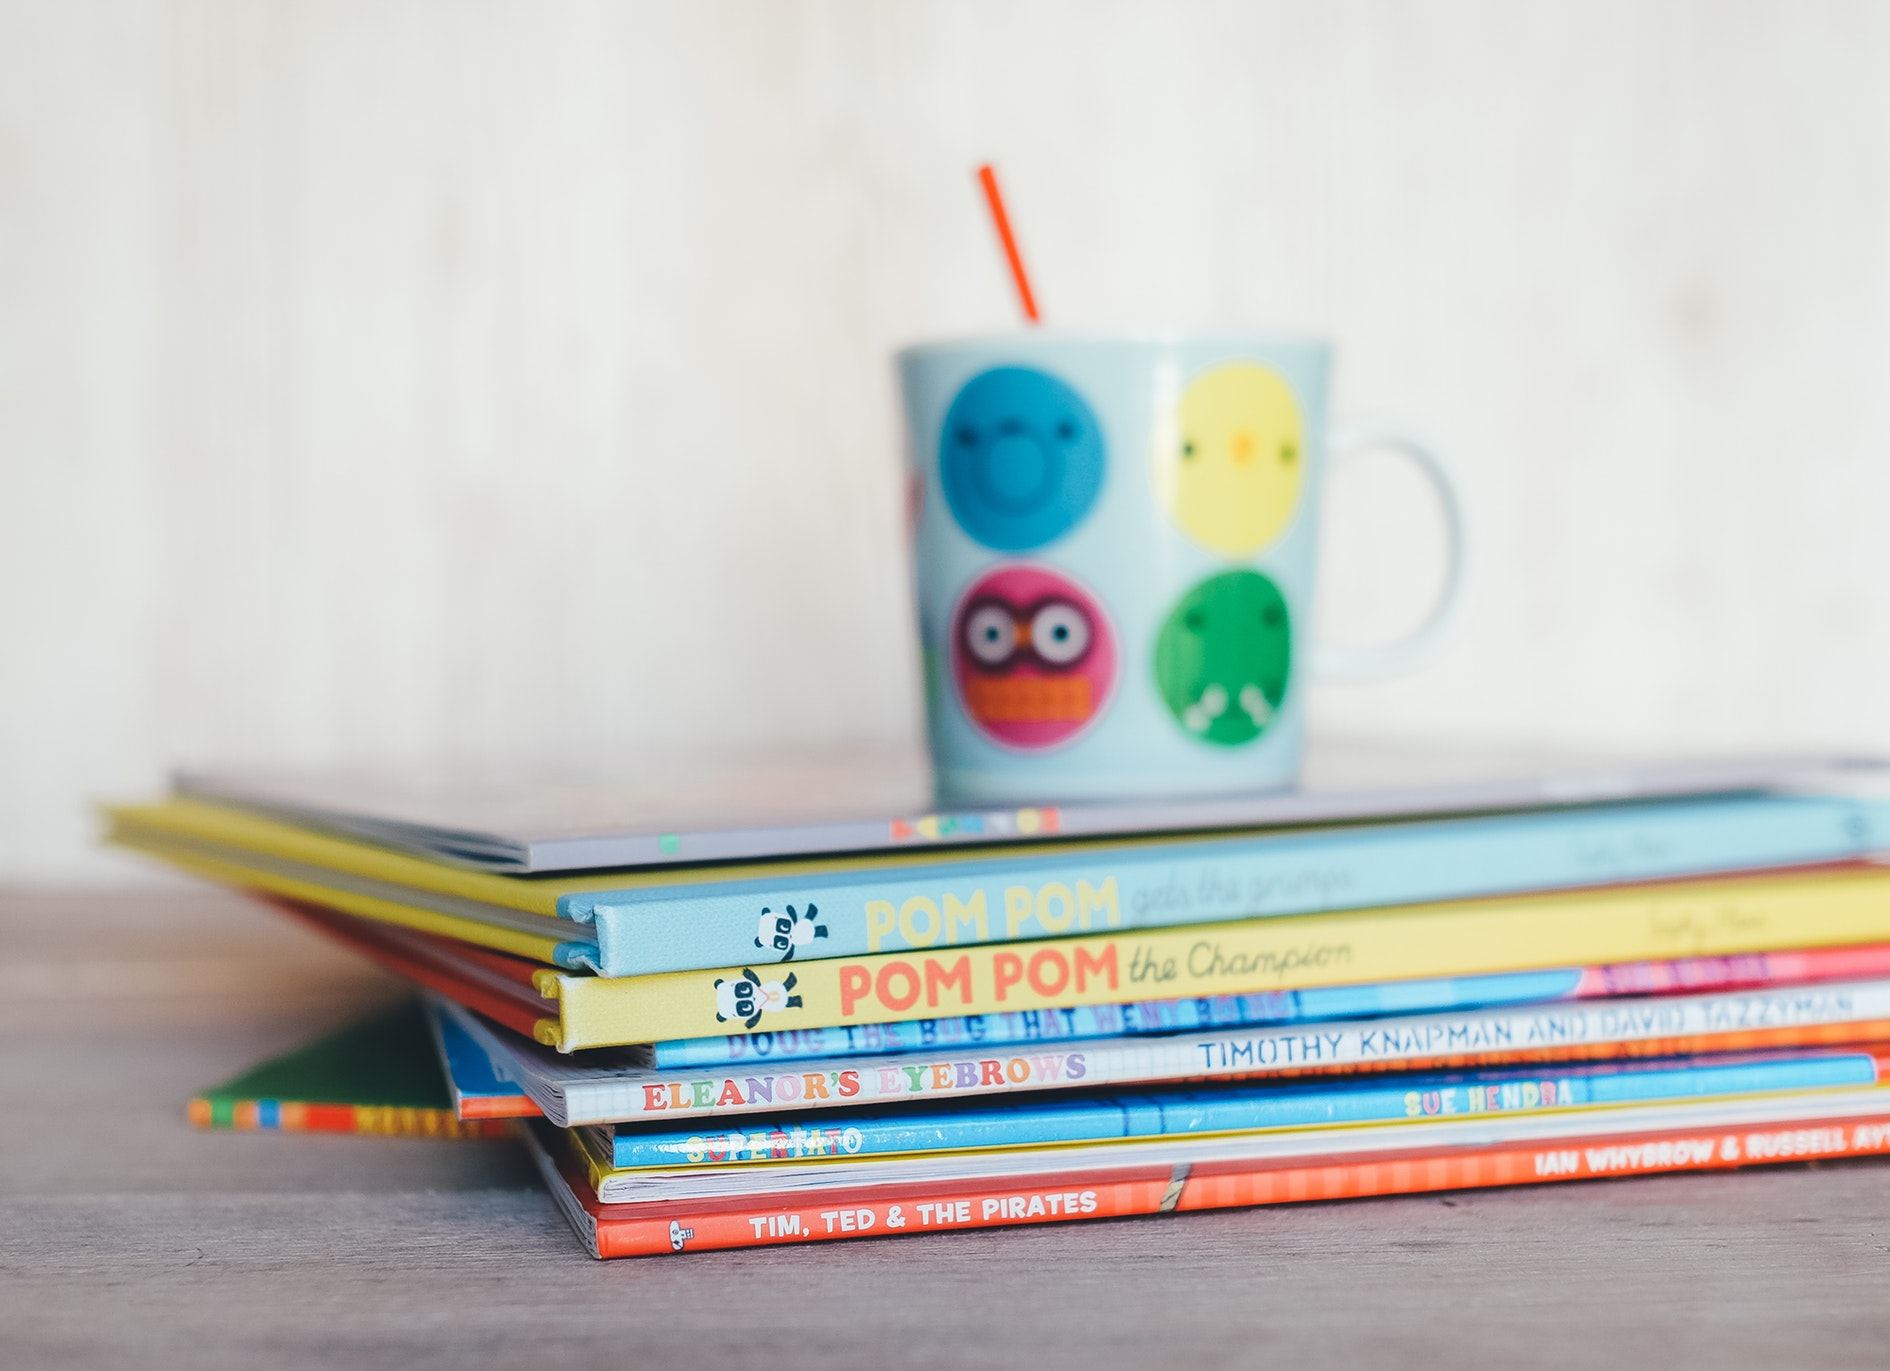 Stacked, colorful children's books sit on a table stacked on top of one another.